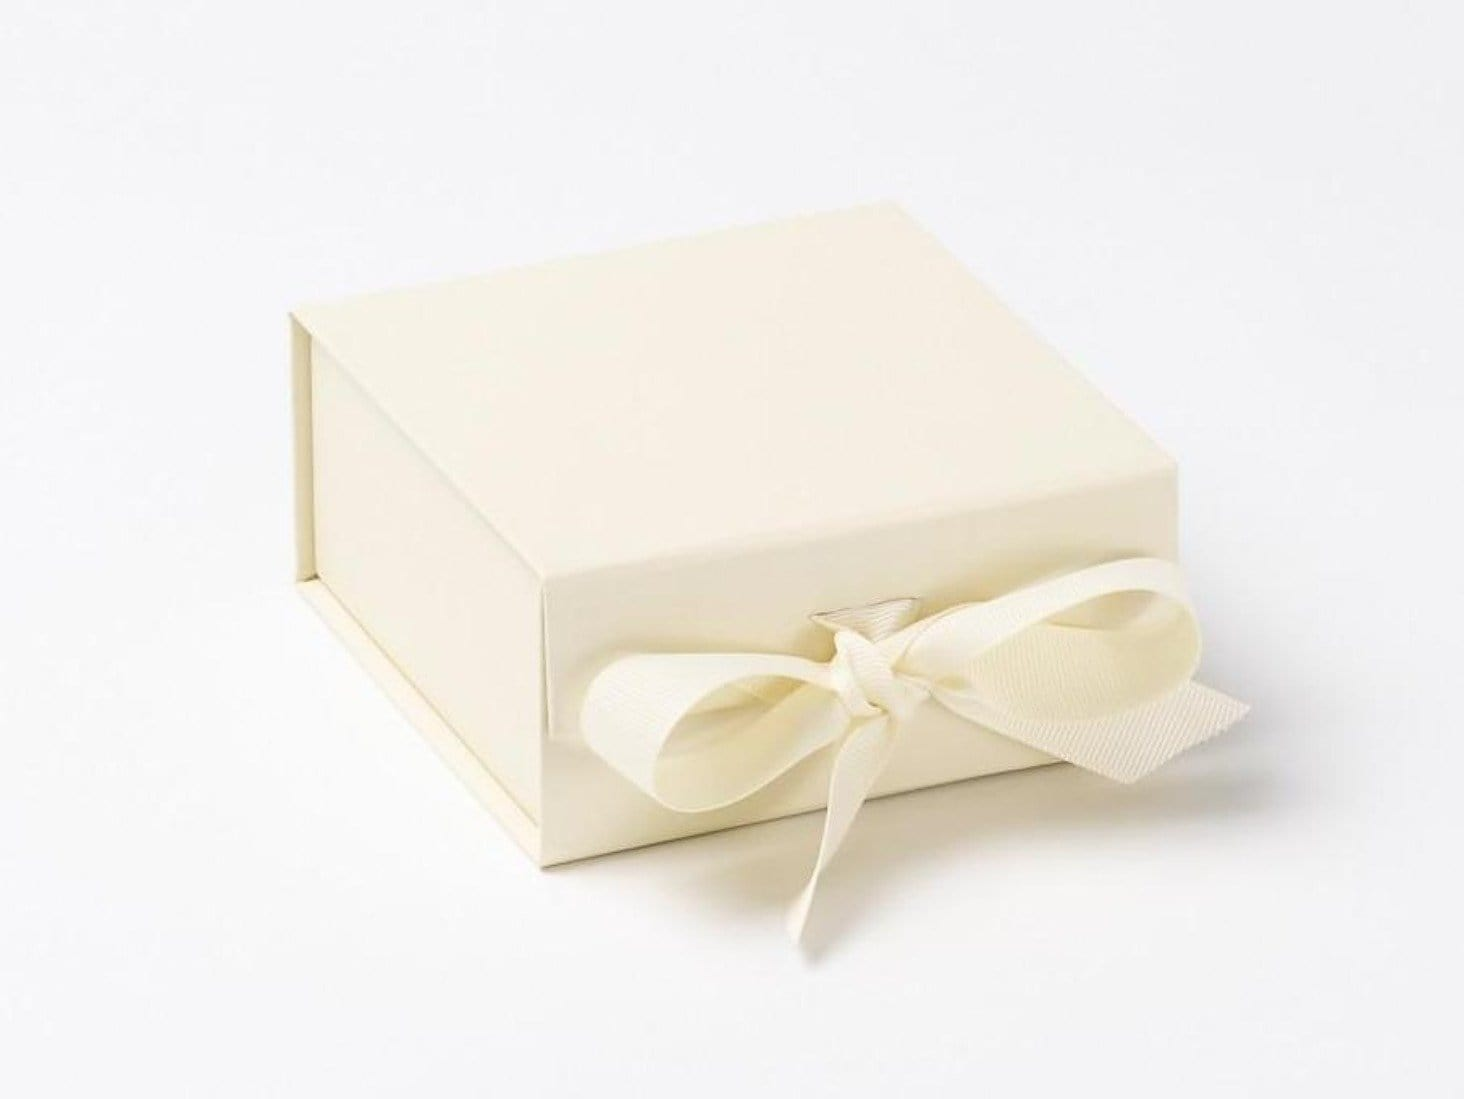 Small ivory folding gift box or wedding favour box from Foldabox